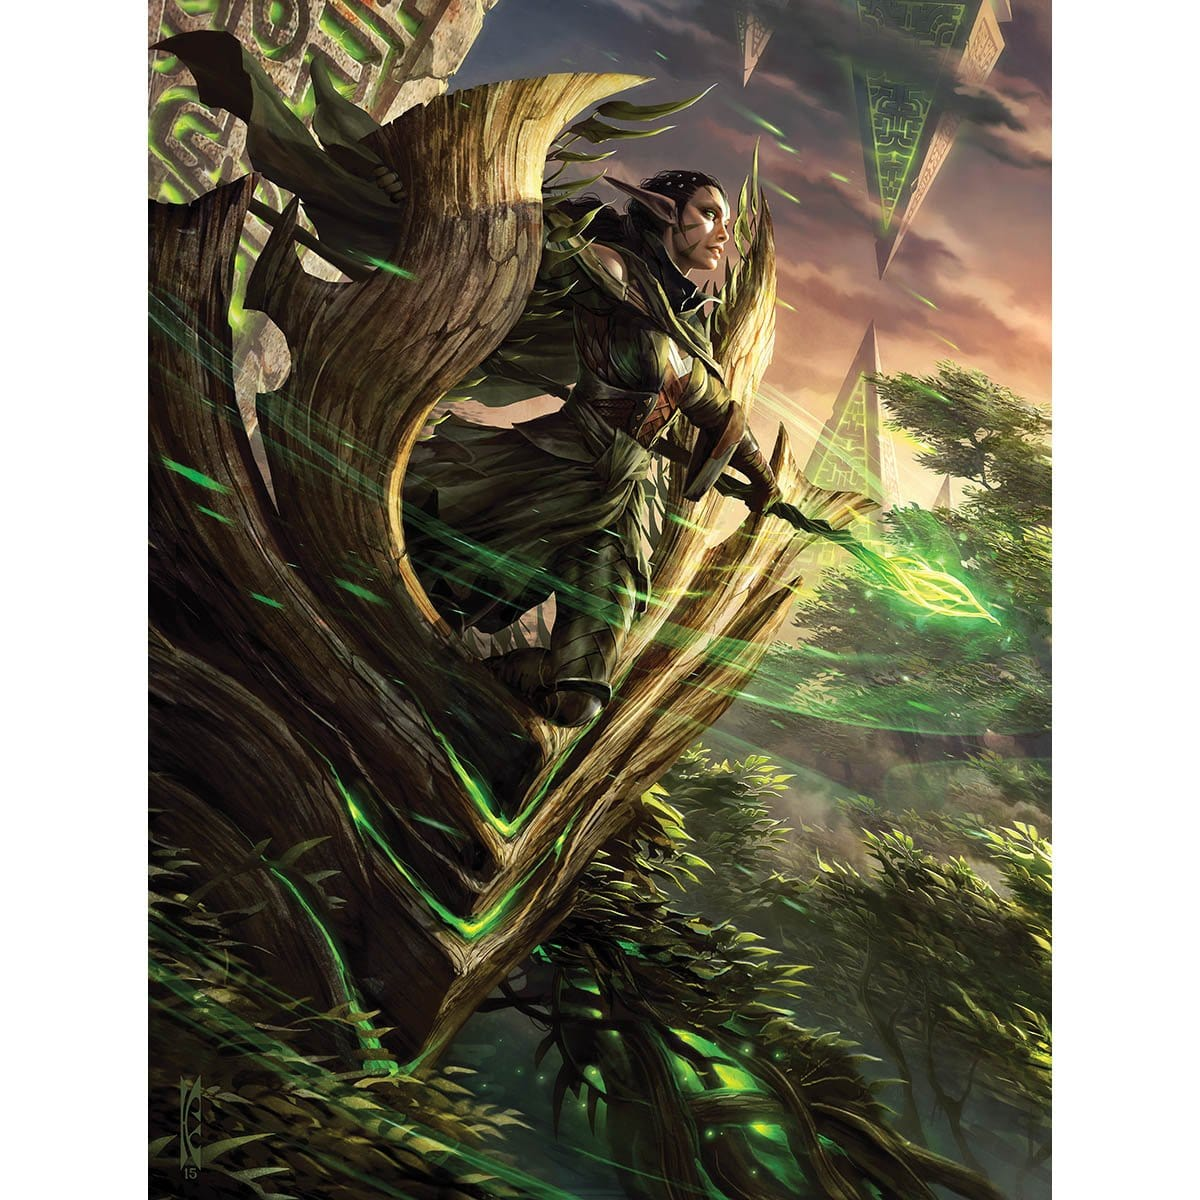 Nissa, Voice of Zendikar Print - Print - Original Magic Art - Accessories for Magic the Gathering and other card games